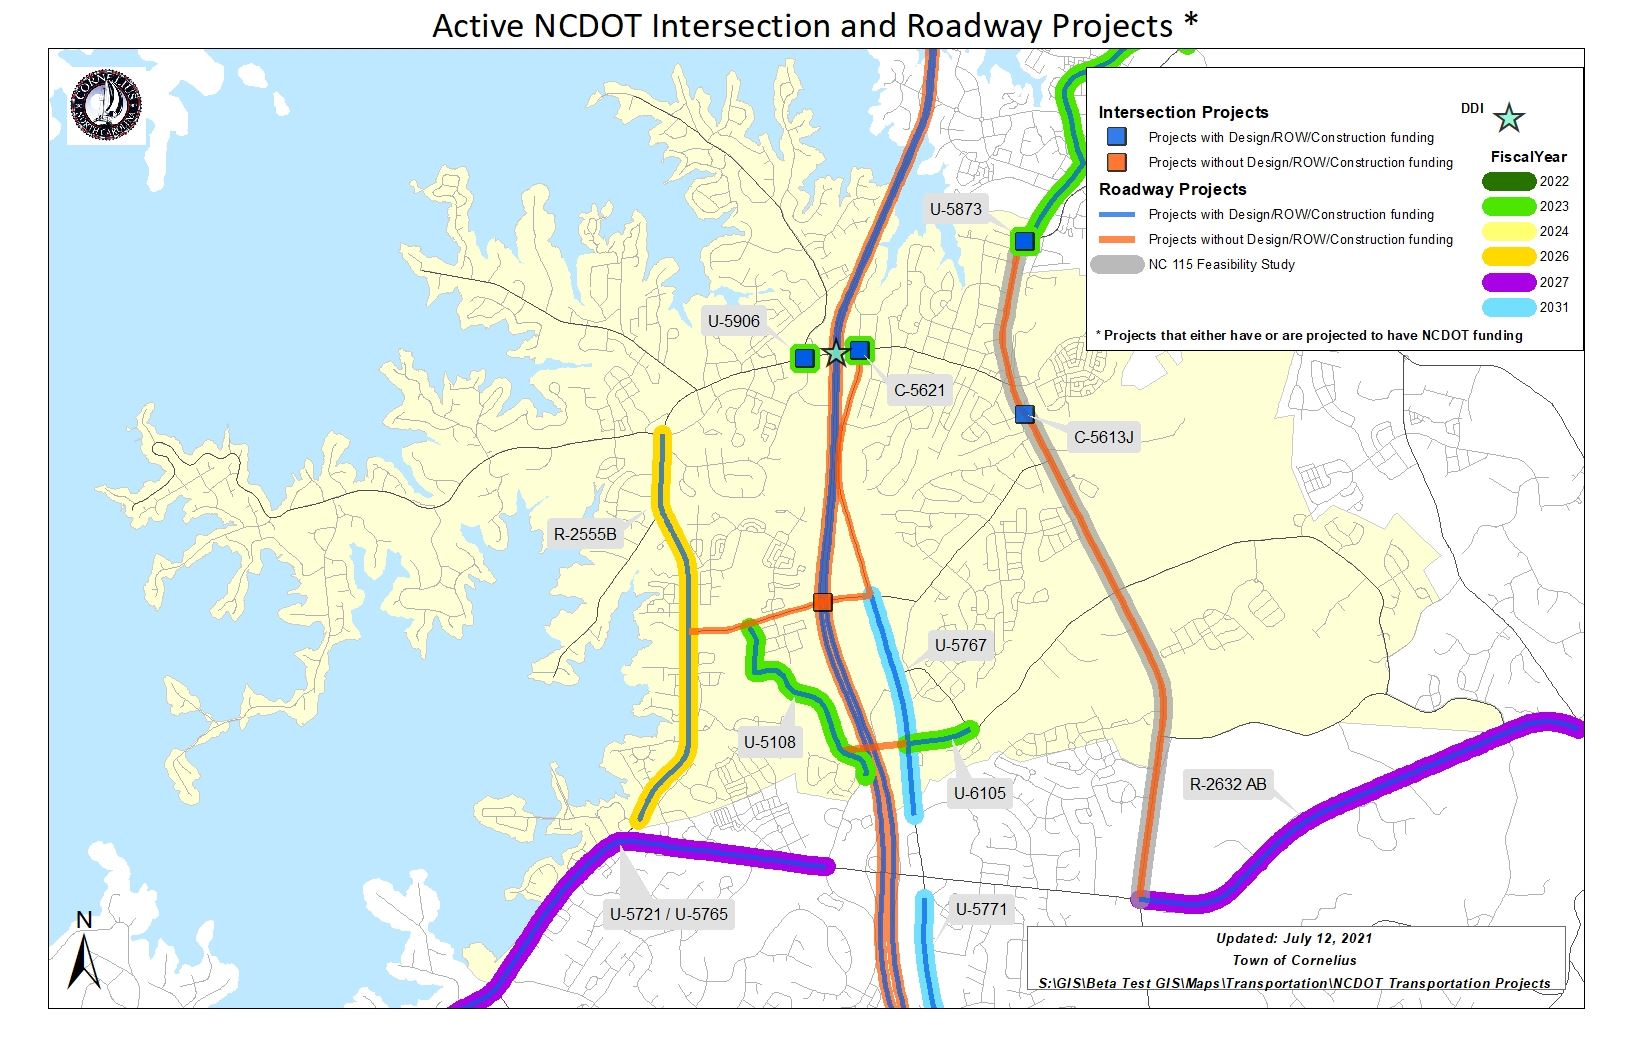 Active NCDOT Projects